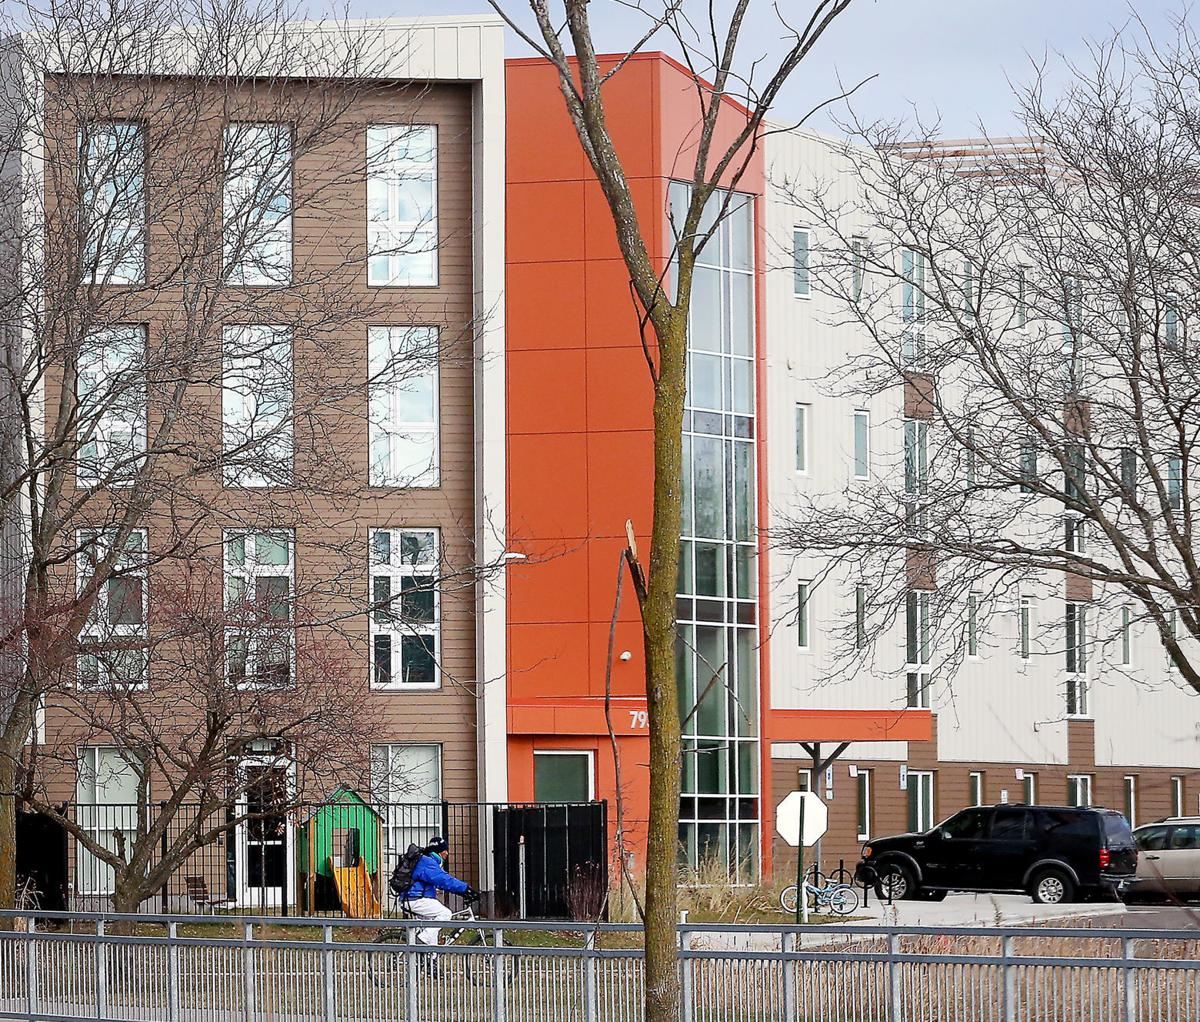 Apartment Finder Websites: Officials Considering More Security At Troubled Madison